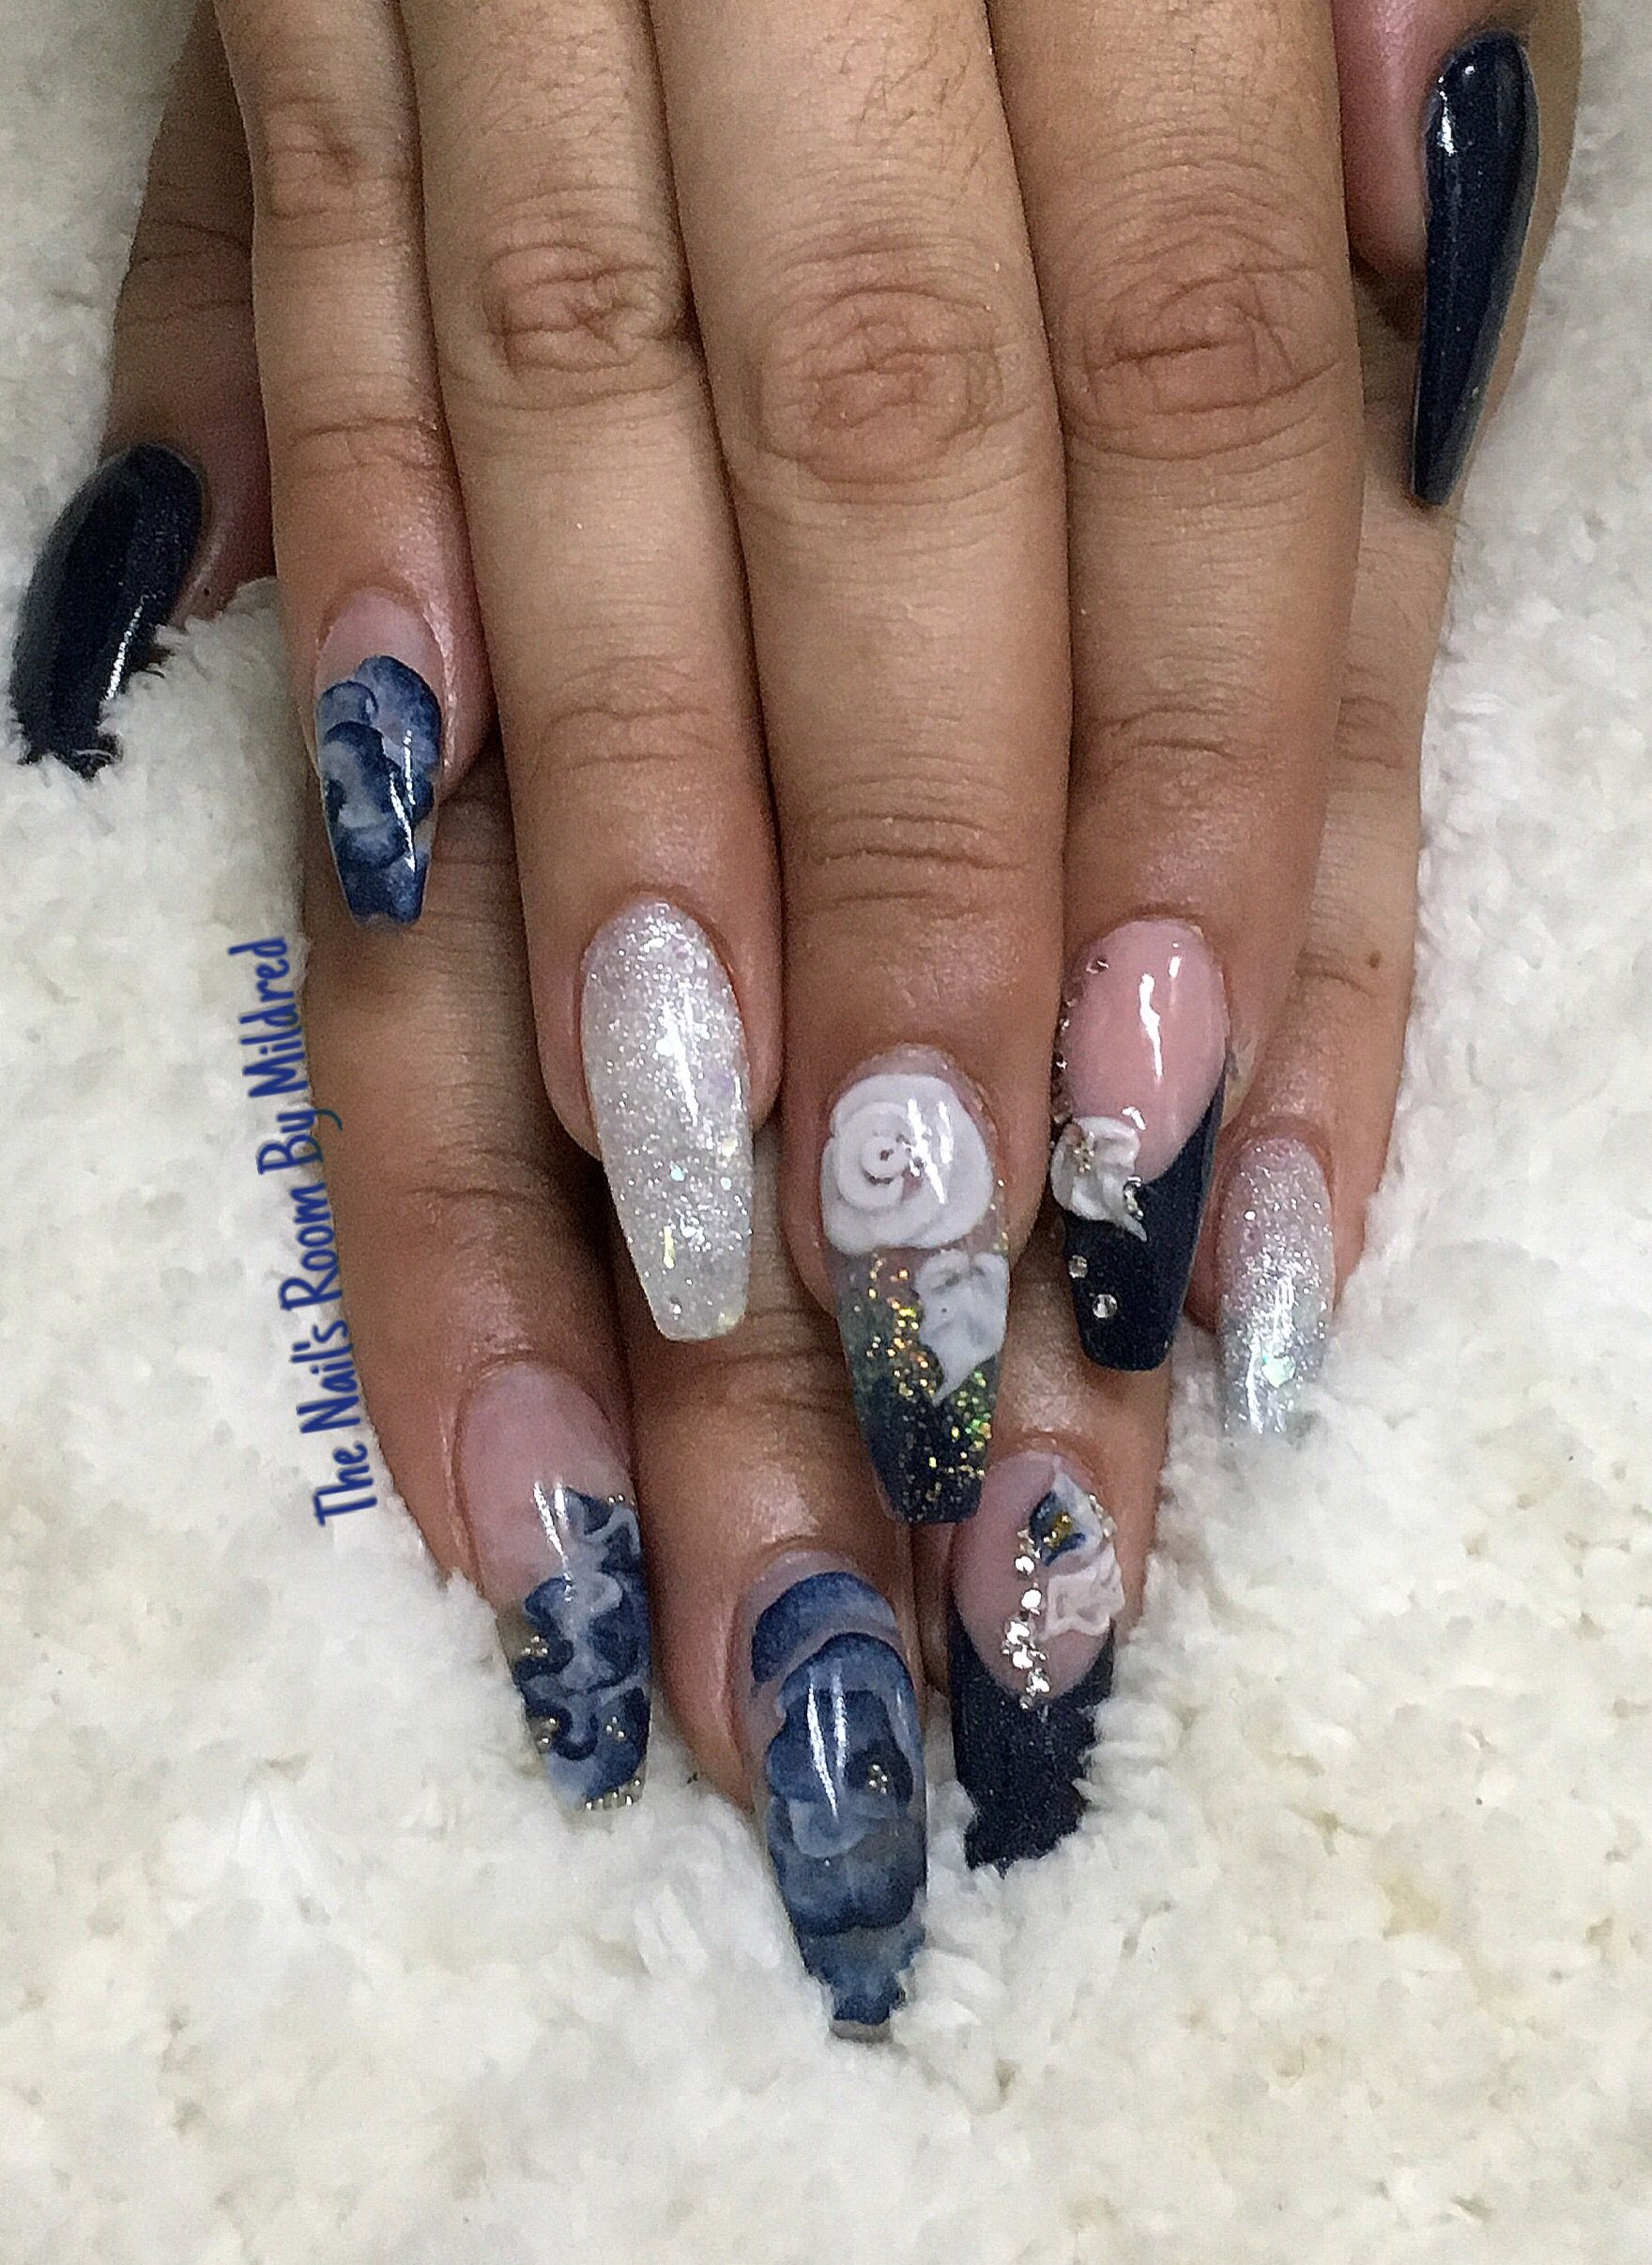 Pink zebra nails nails pinterest - Blue 3d Flowers Encapsulated And Glittery Off White Coffin Nails Thenailsroom